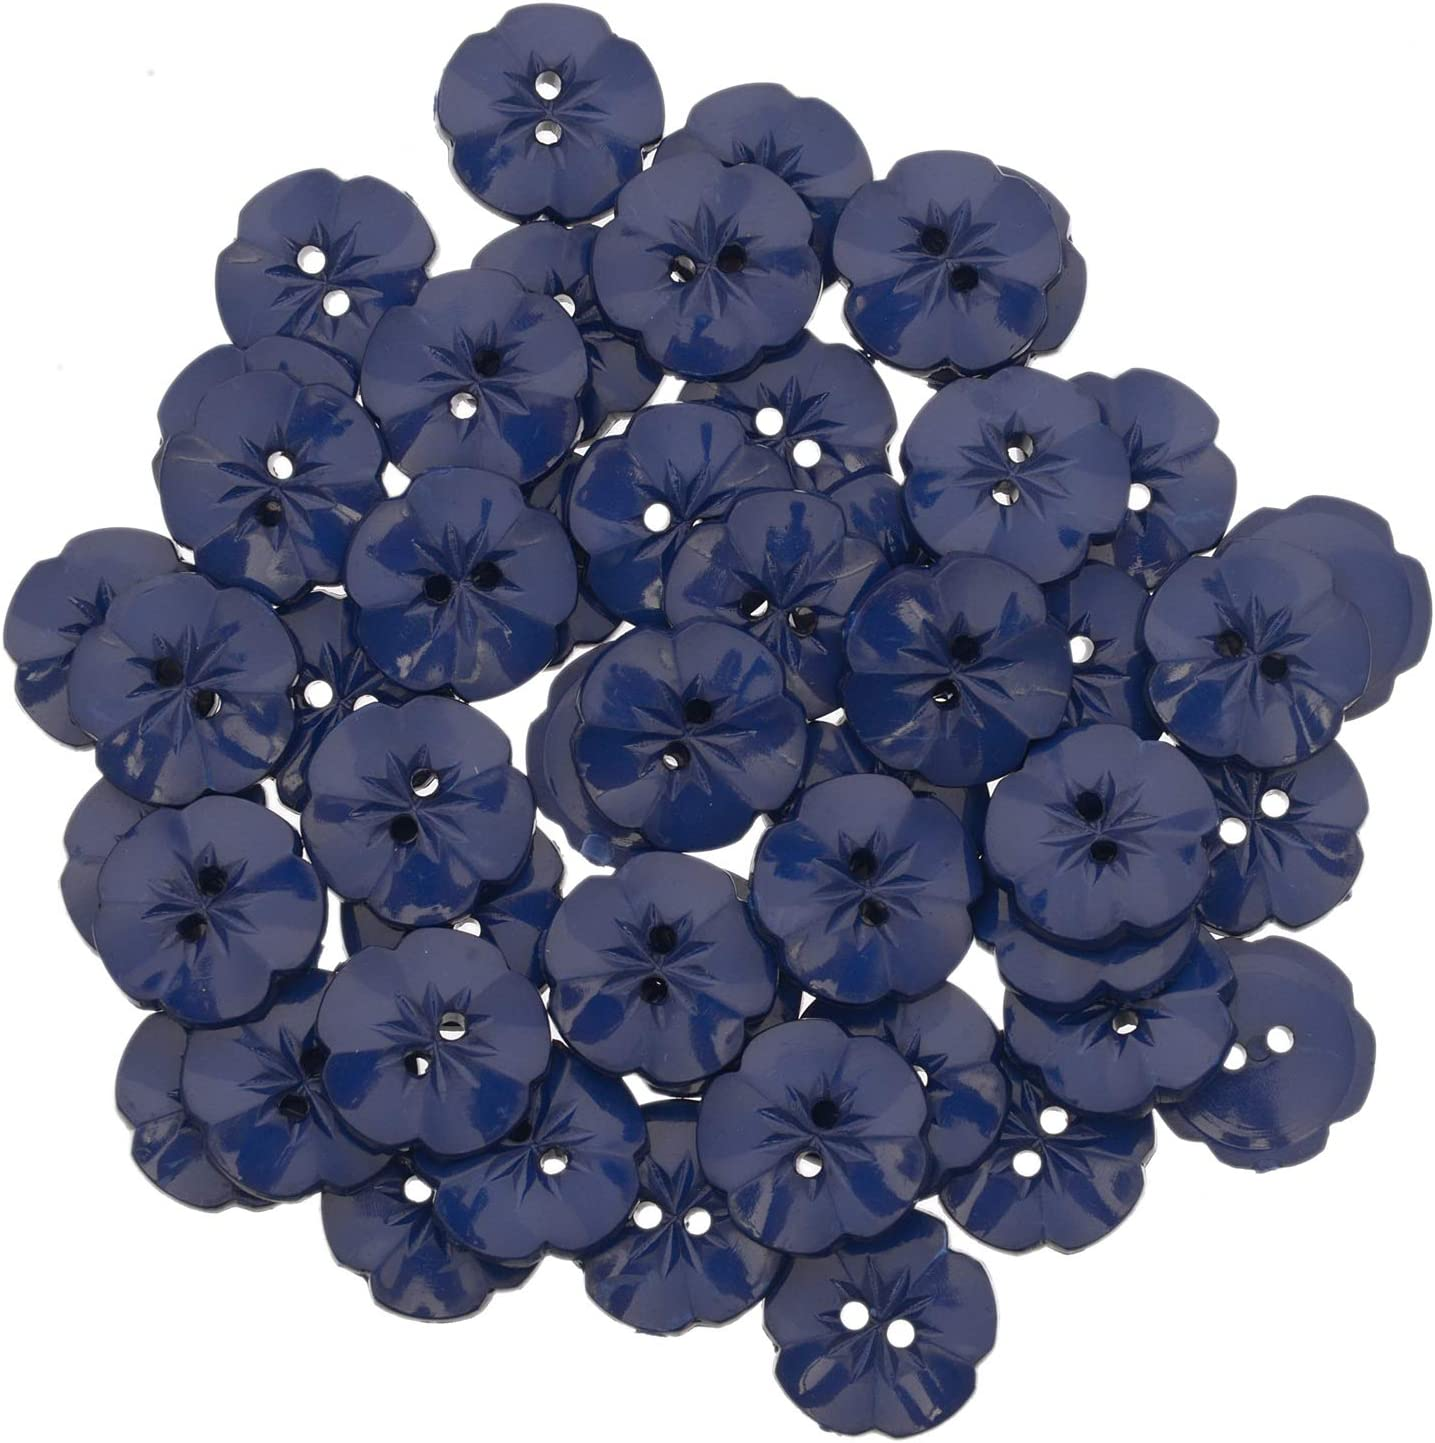 2 Hole Pansy Flower Shape Button 28 Line -Tuquoise Mibo Nylon Resin